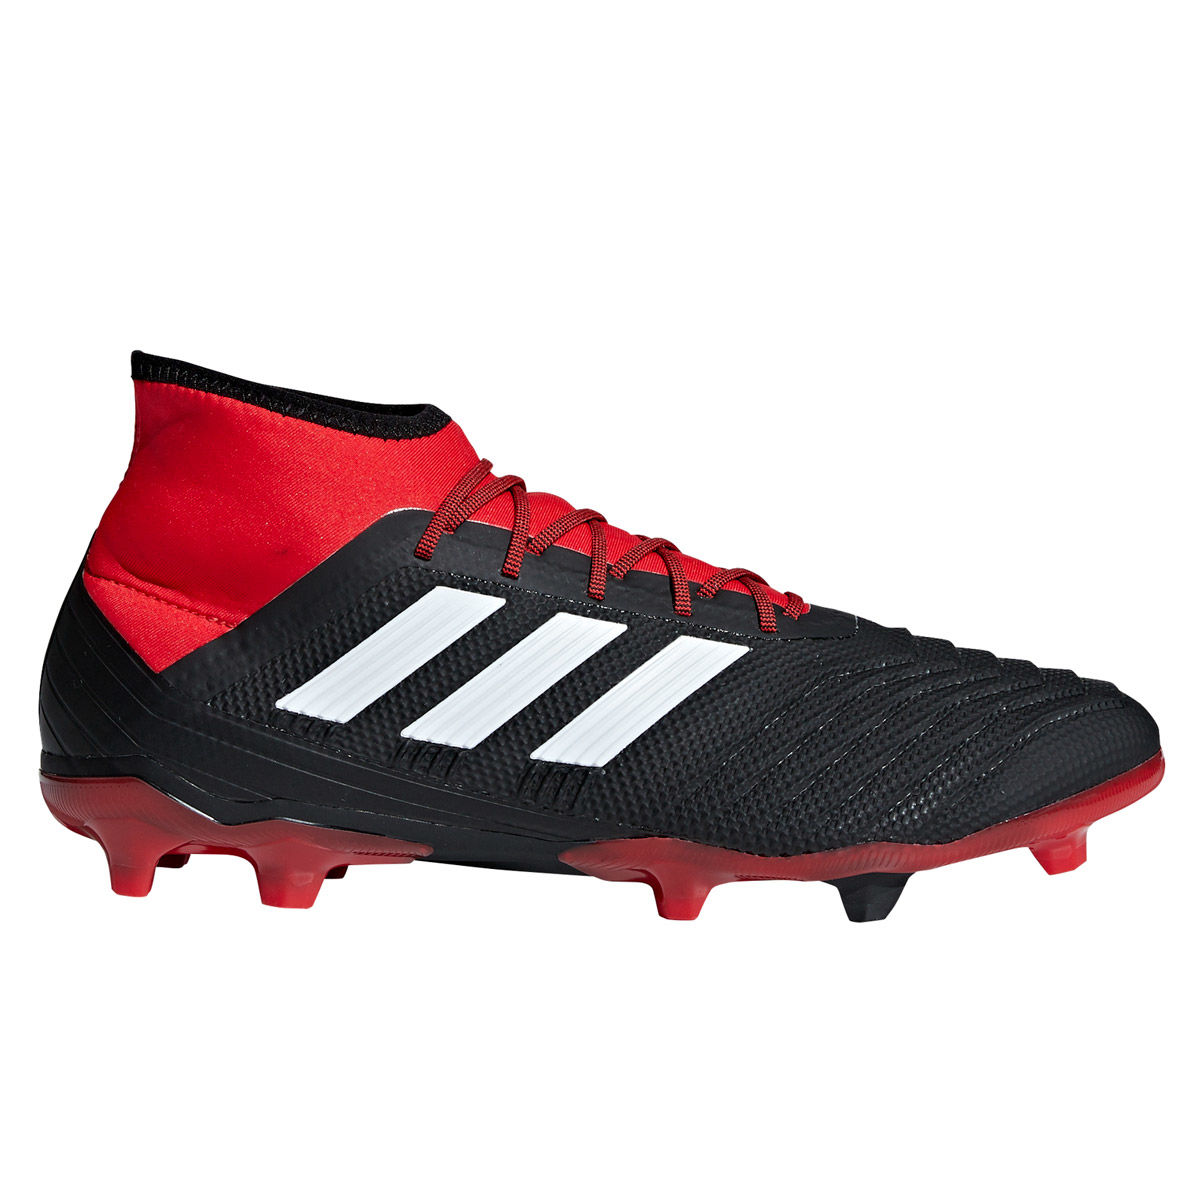 adidas Predator 18.2 Mens Firm Ground Soccer Cleat